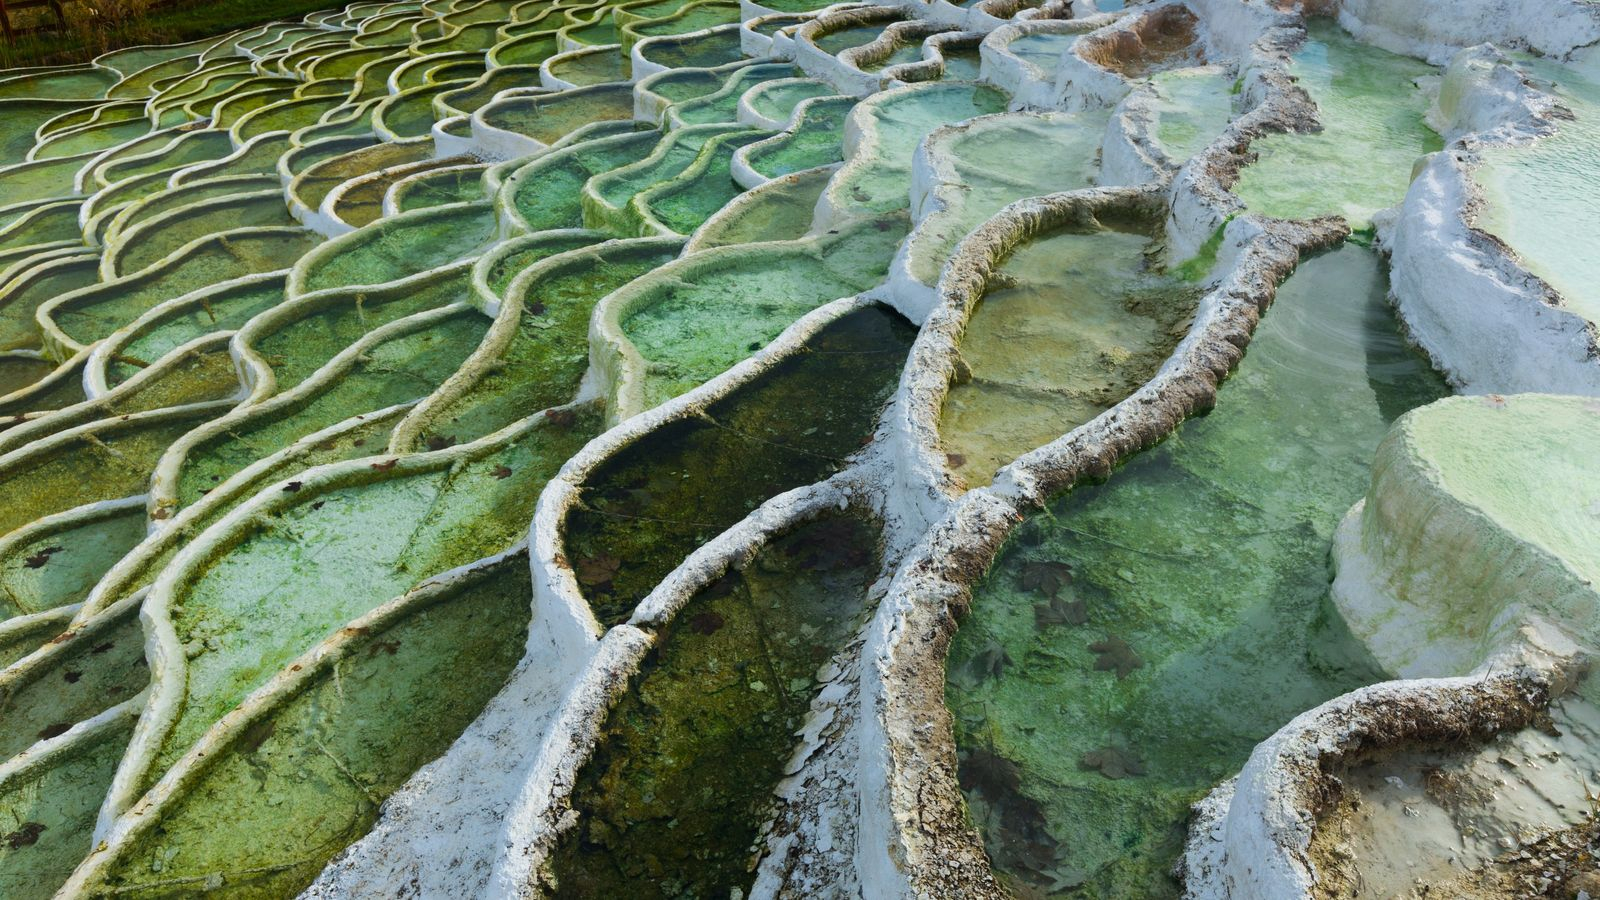 The colorful thermal waters in Egerszalok sit within terraced limestone formations lined with travertine.